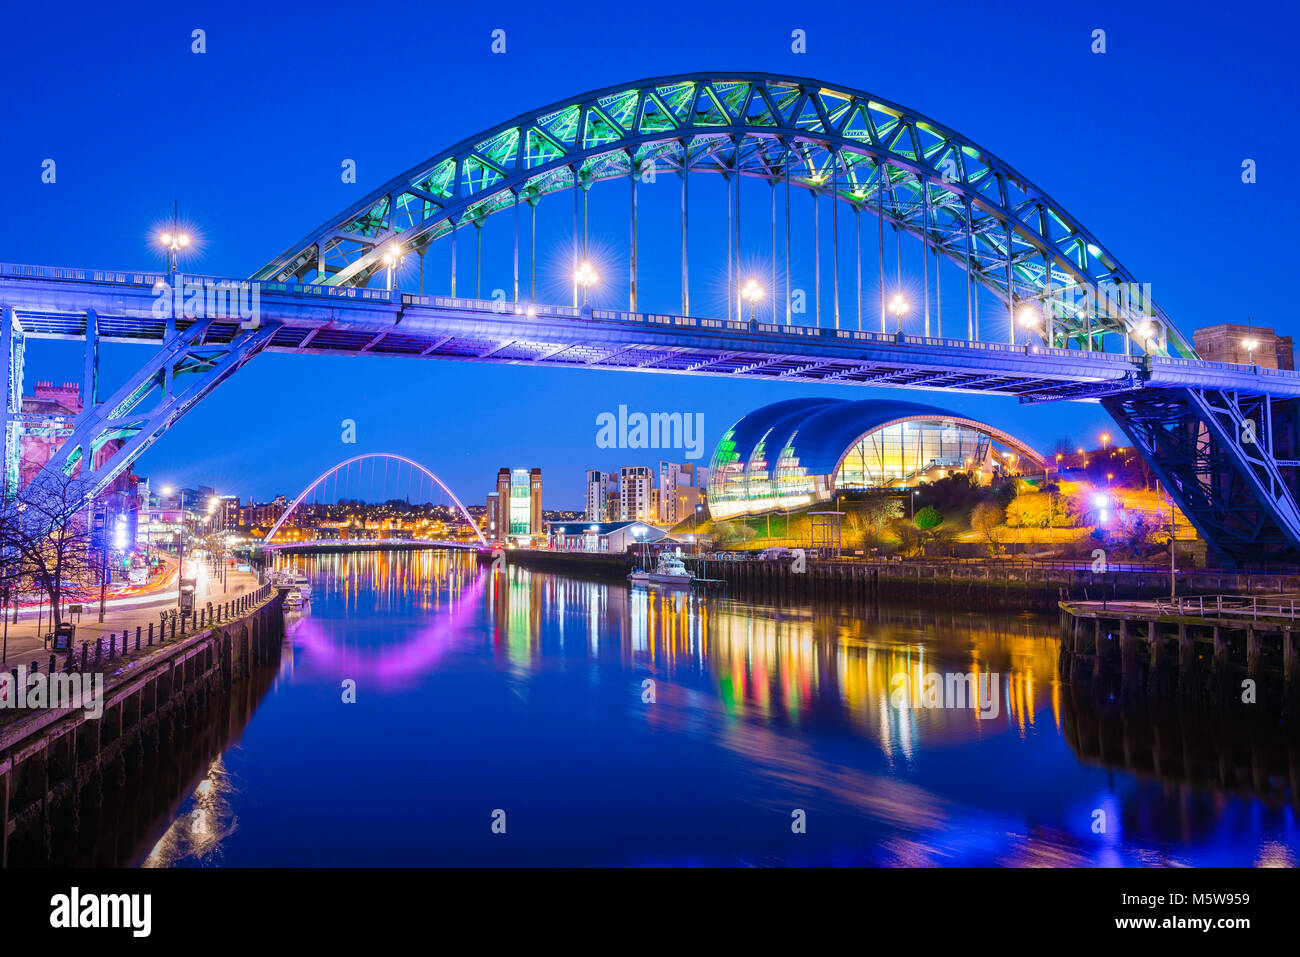 Newcastle Tyne Bridge, view at night of the iconic Tyne Bridge with the Sage Gateshead building and Millennium Bridge - Stock Image